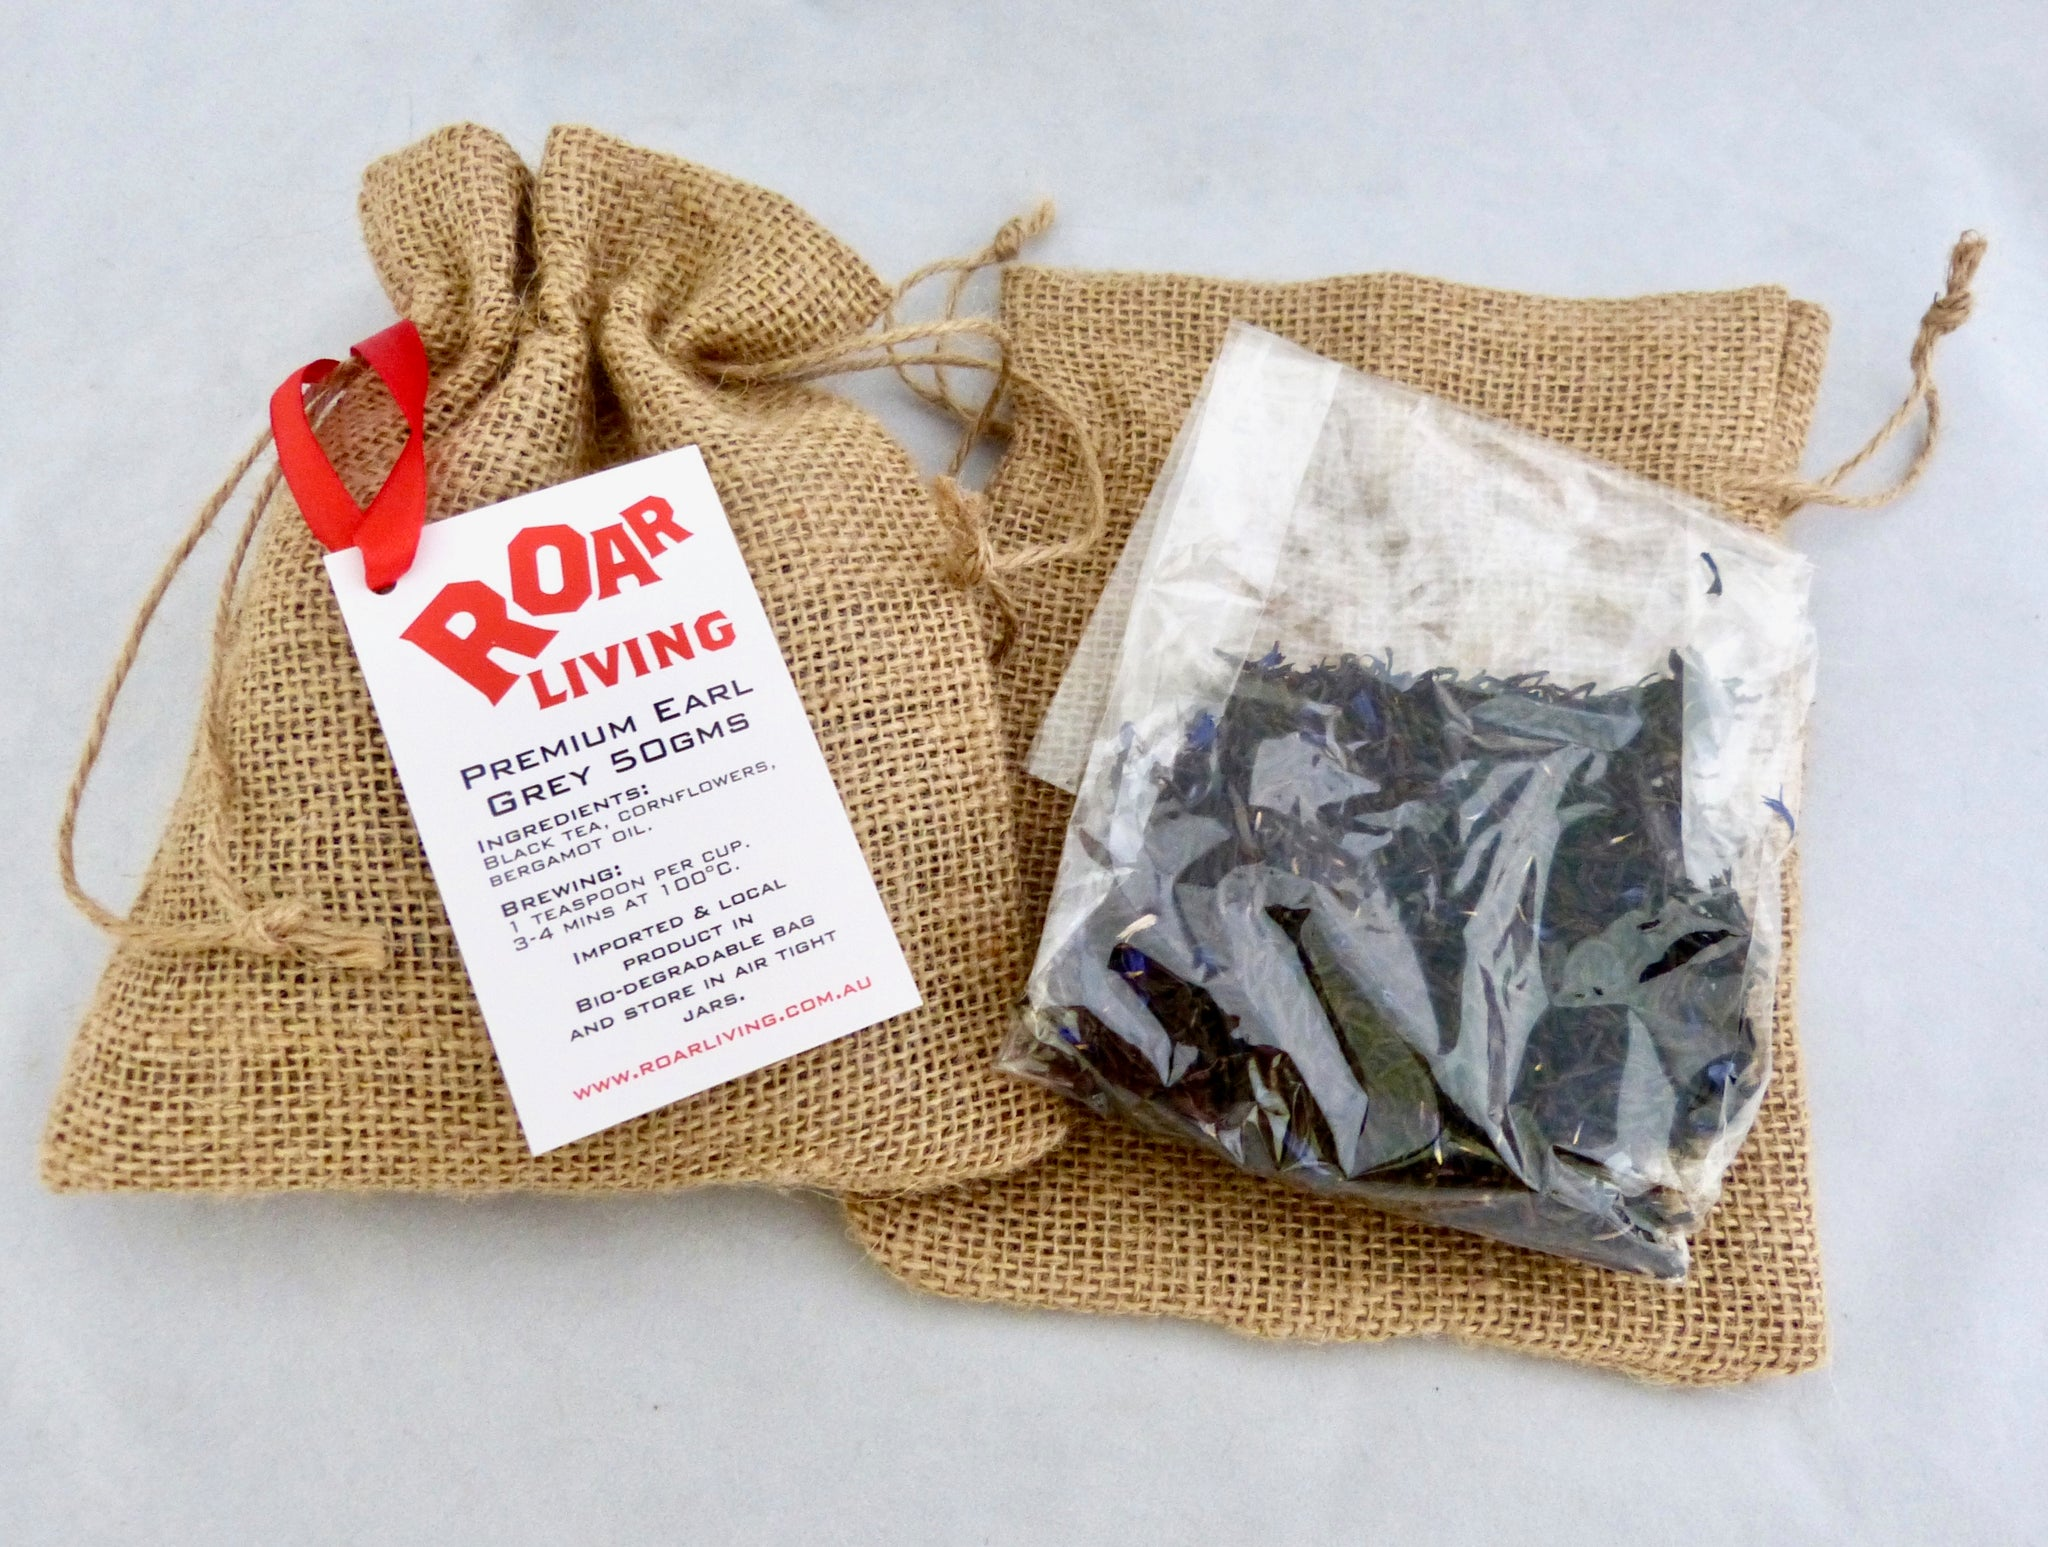 Earl grey. Earl grey tea leaves. premium tea leaves. Iced tea recipe. compostable bag. Hassian bag